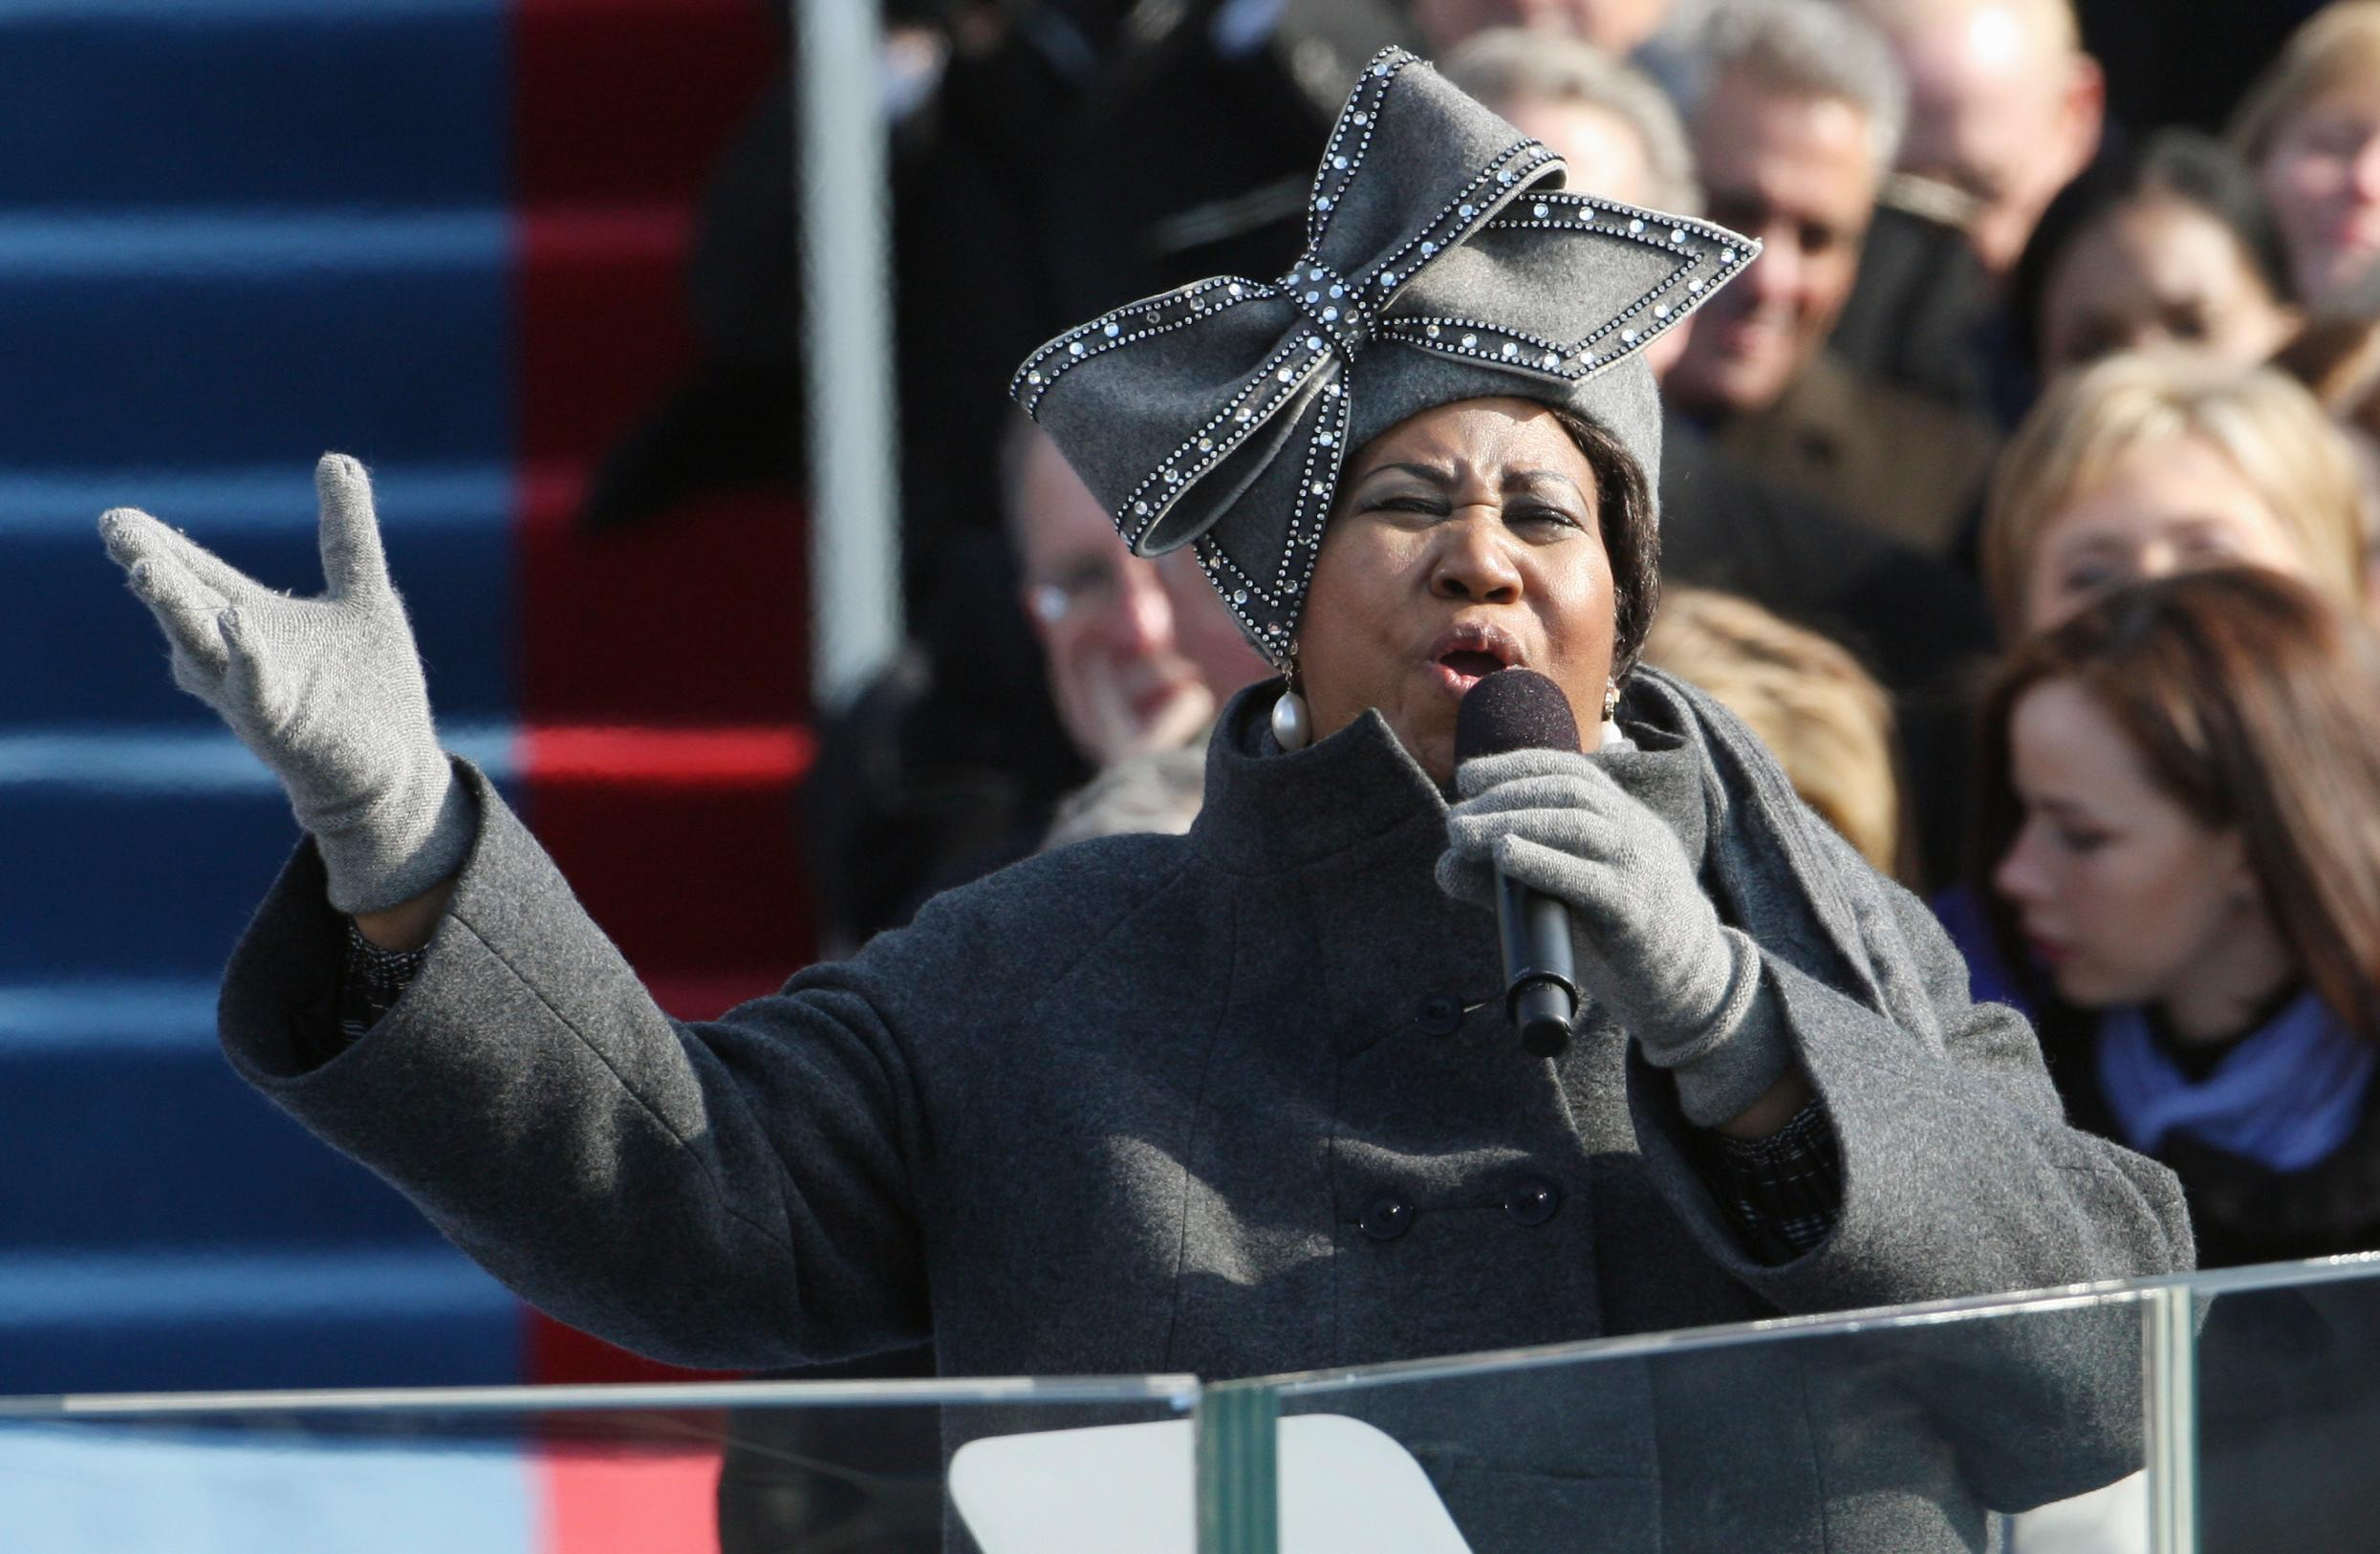 FILE - In this Jan. 20, 2009 file photo, Aretha Franklin performs at the inauguration for President Barack Obama at the U.S. Capitol in Washington. Franklin died Thursday, Aug. 16, 2018 at her home in Detroit.  She was 76. (AP Photo/Ron Edmonds, File)